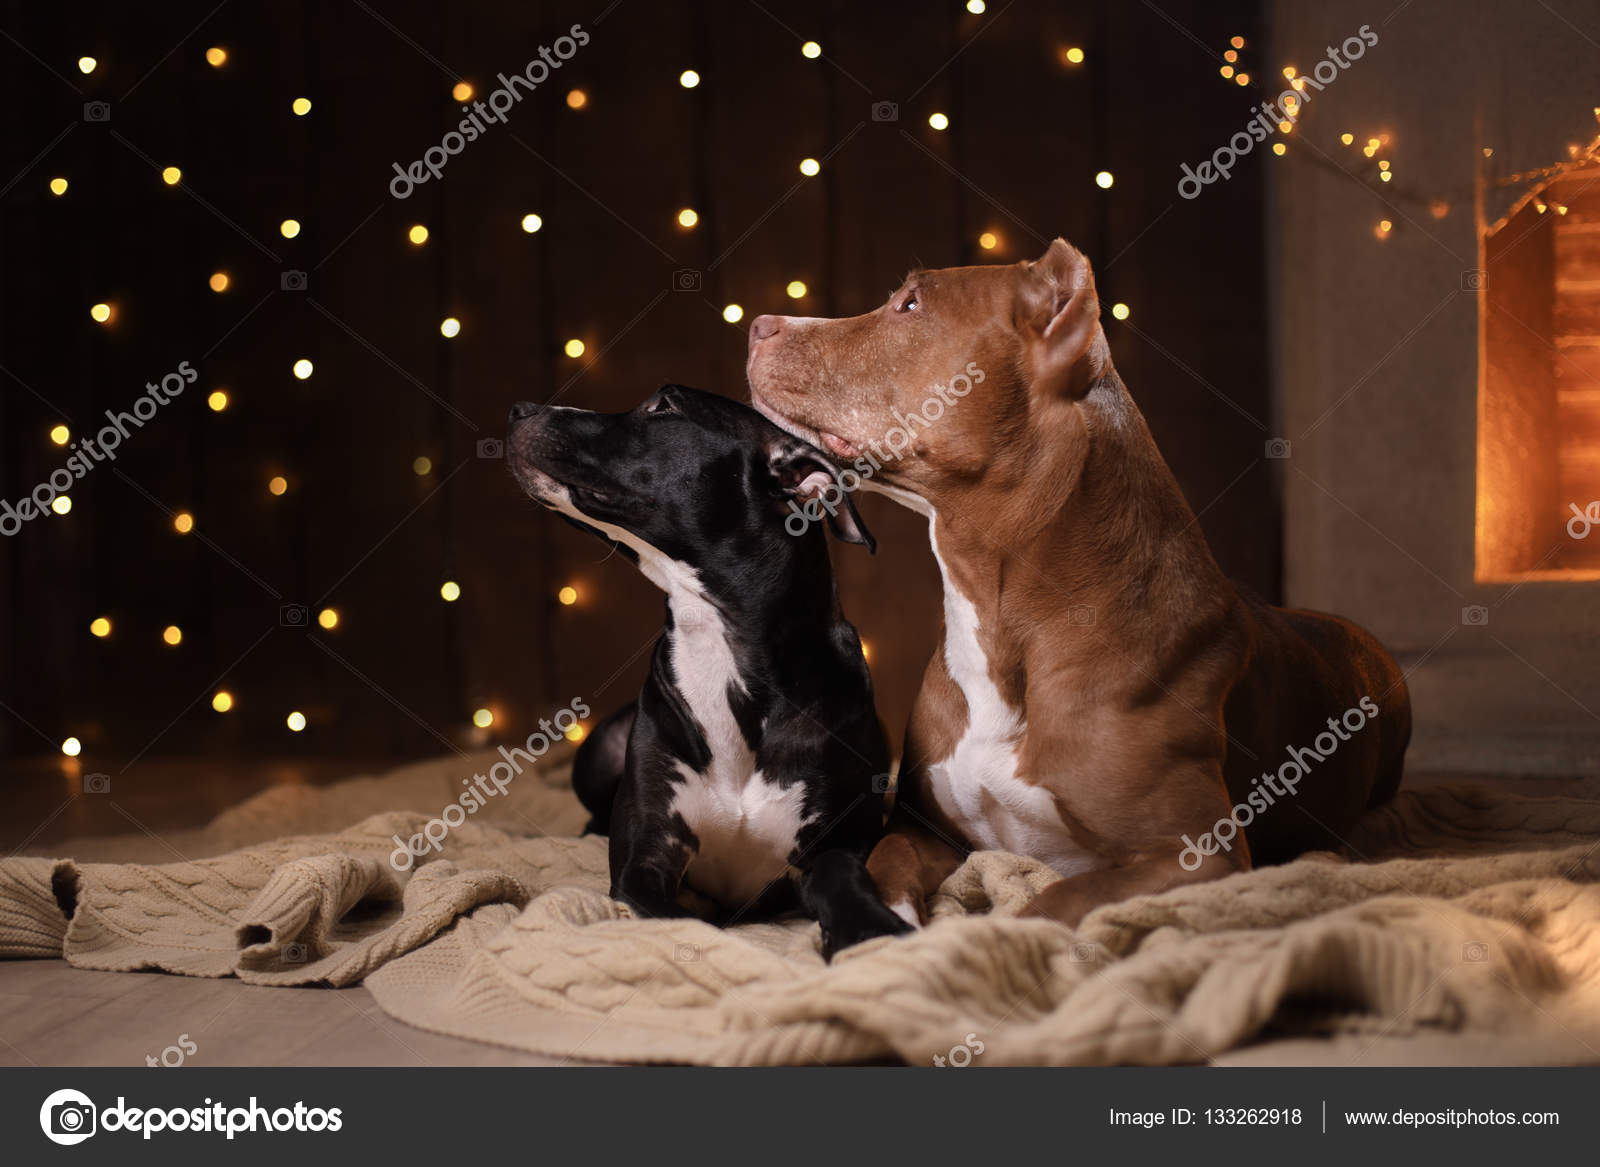 happy new year christmas pet in the room pit bull dog holidays